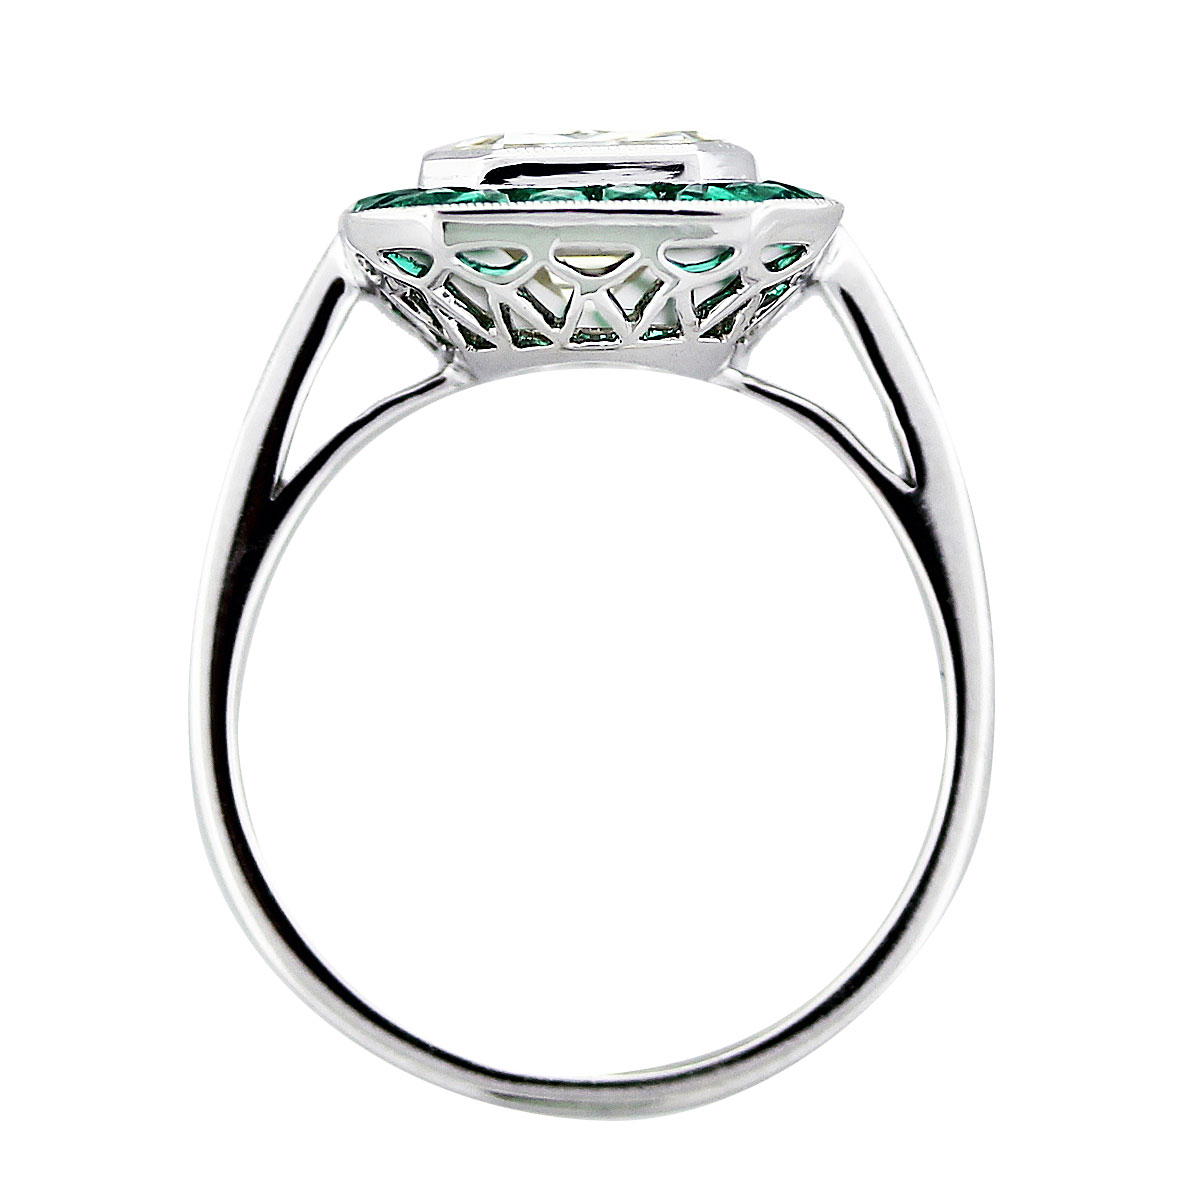 2.5ct emerald diamond ring